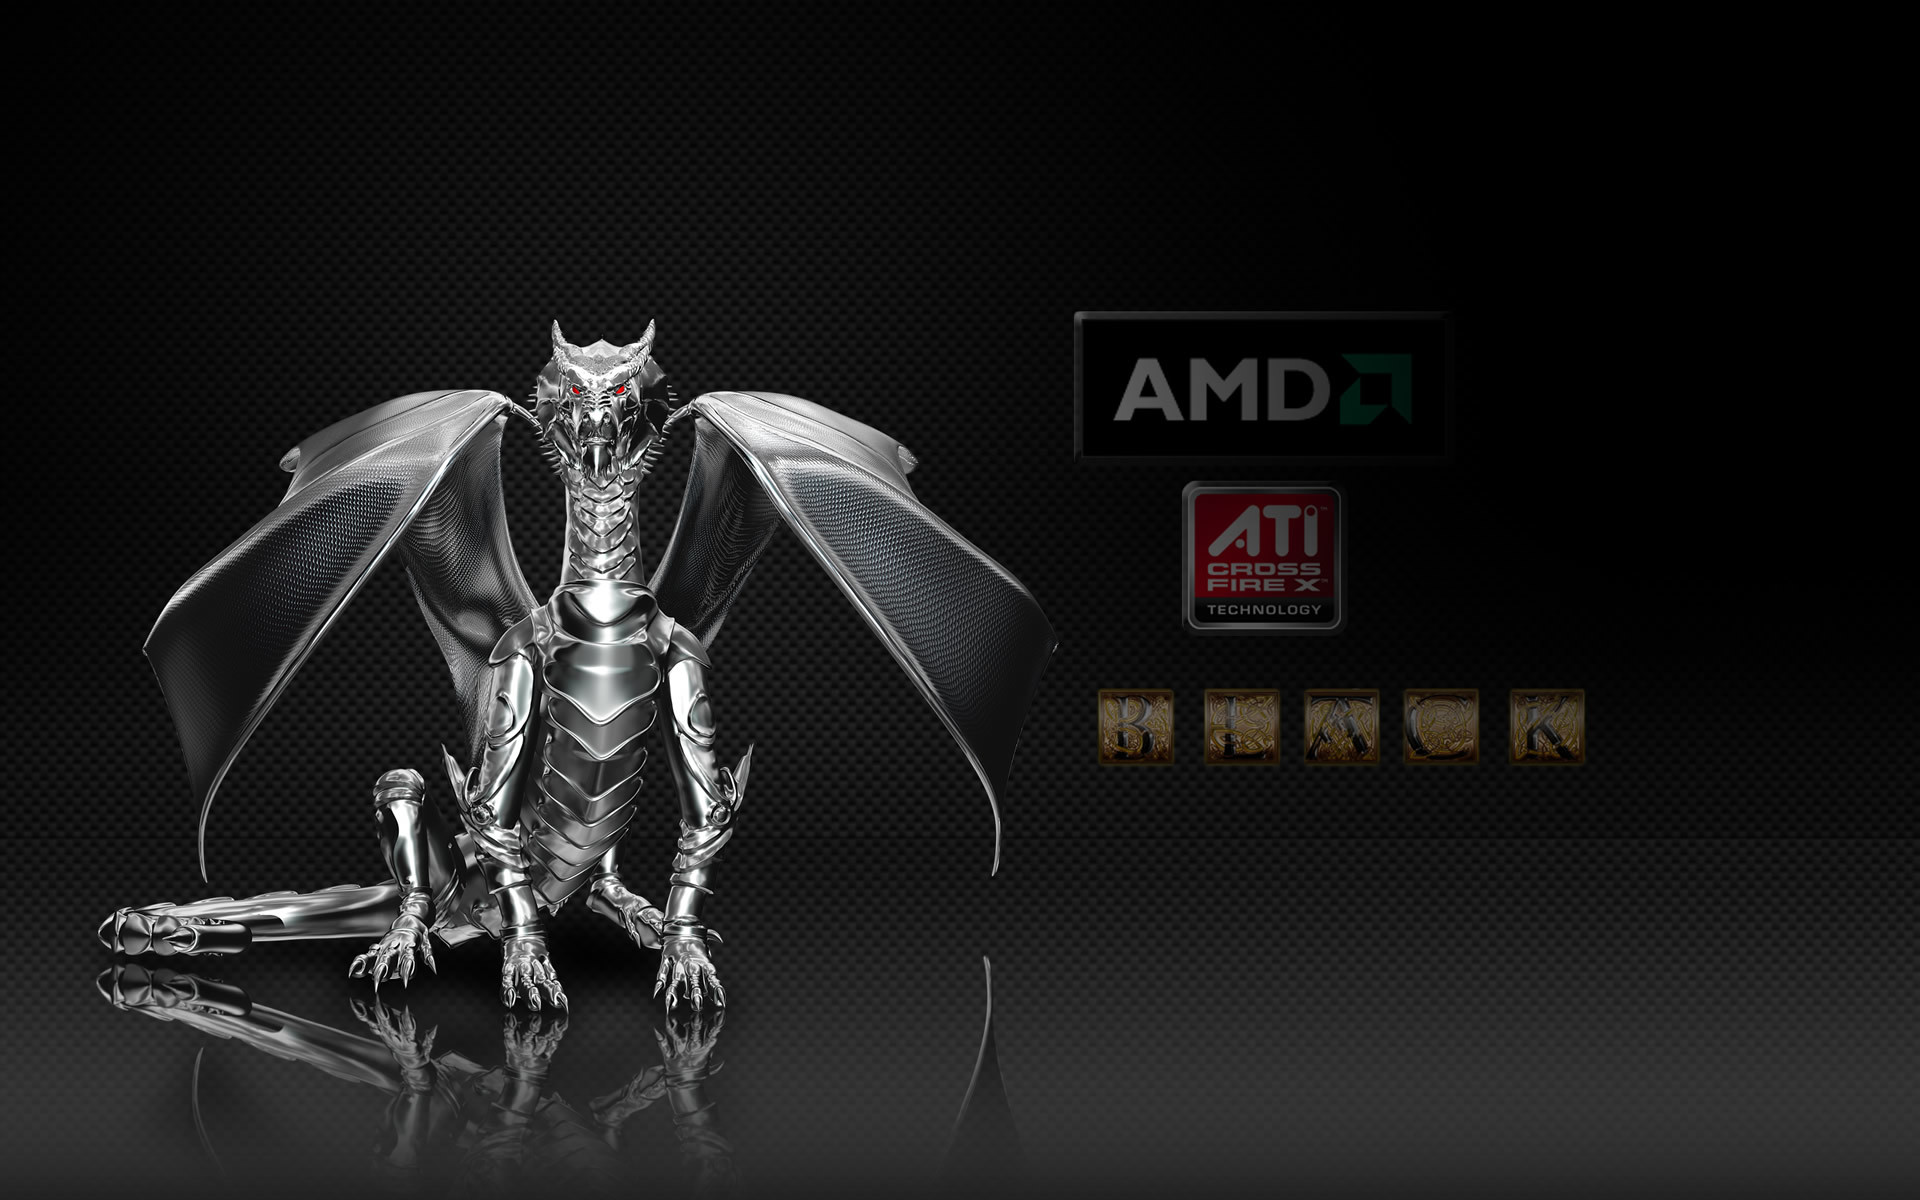 Res: 1920x1200, SY.164 AMD Dragon Wallpapers (Mobile Compatible), 0.27 Mb